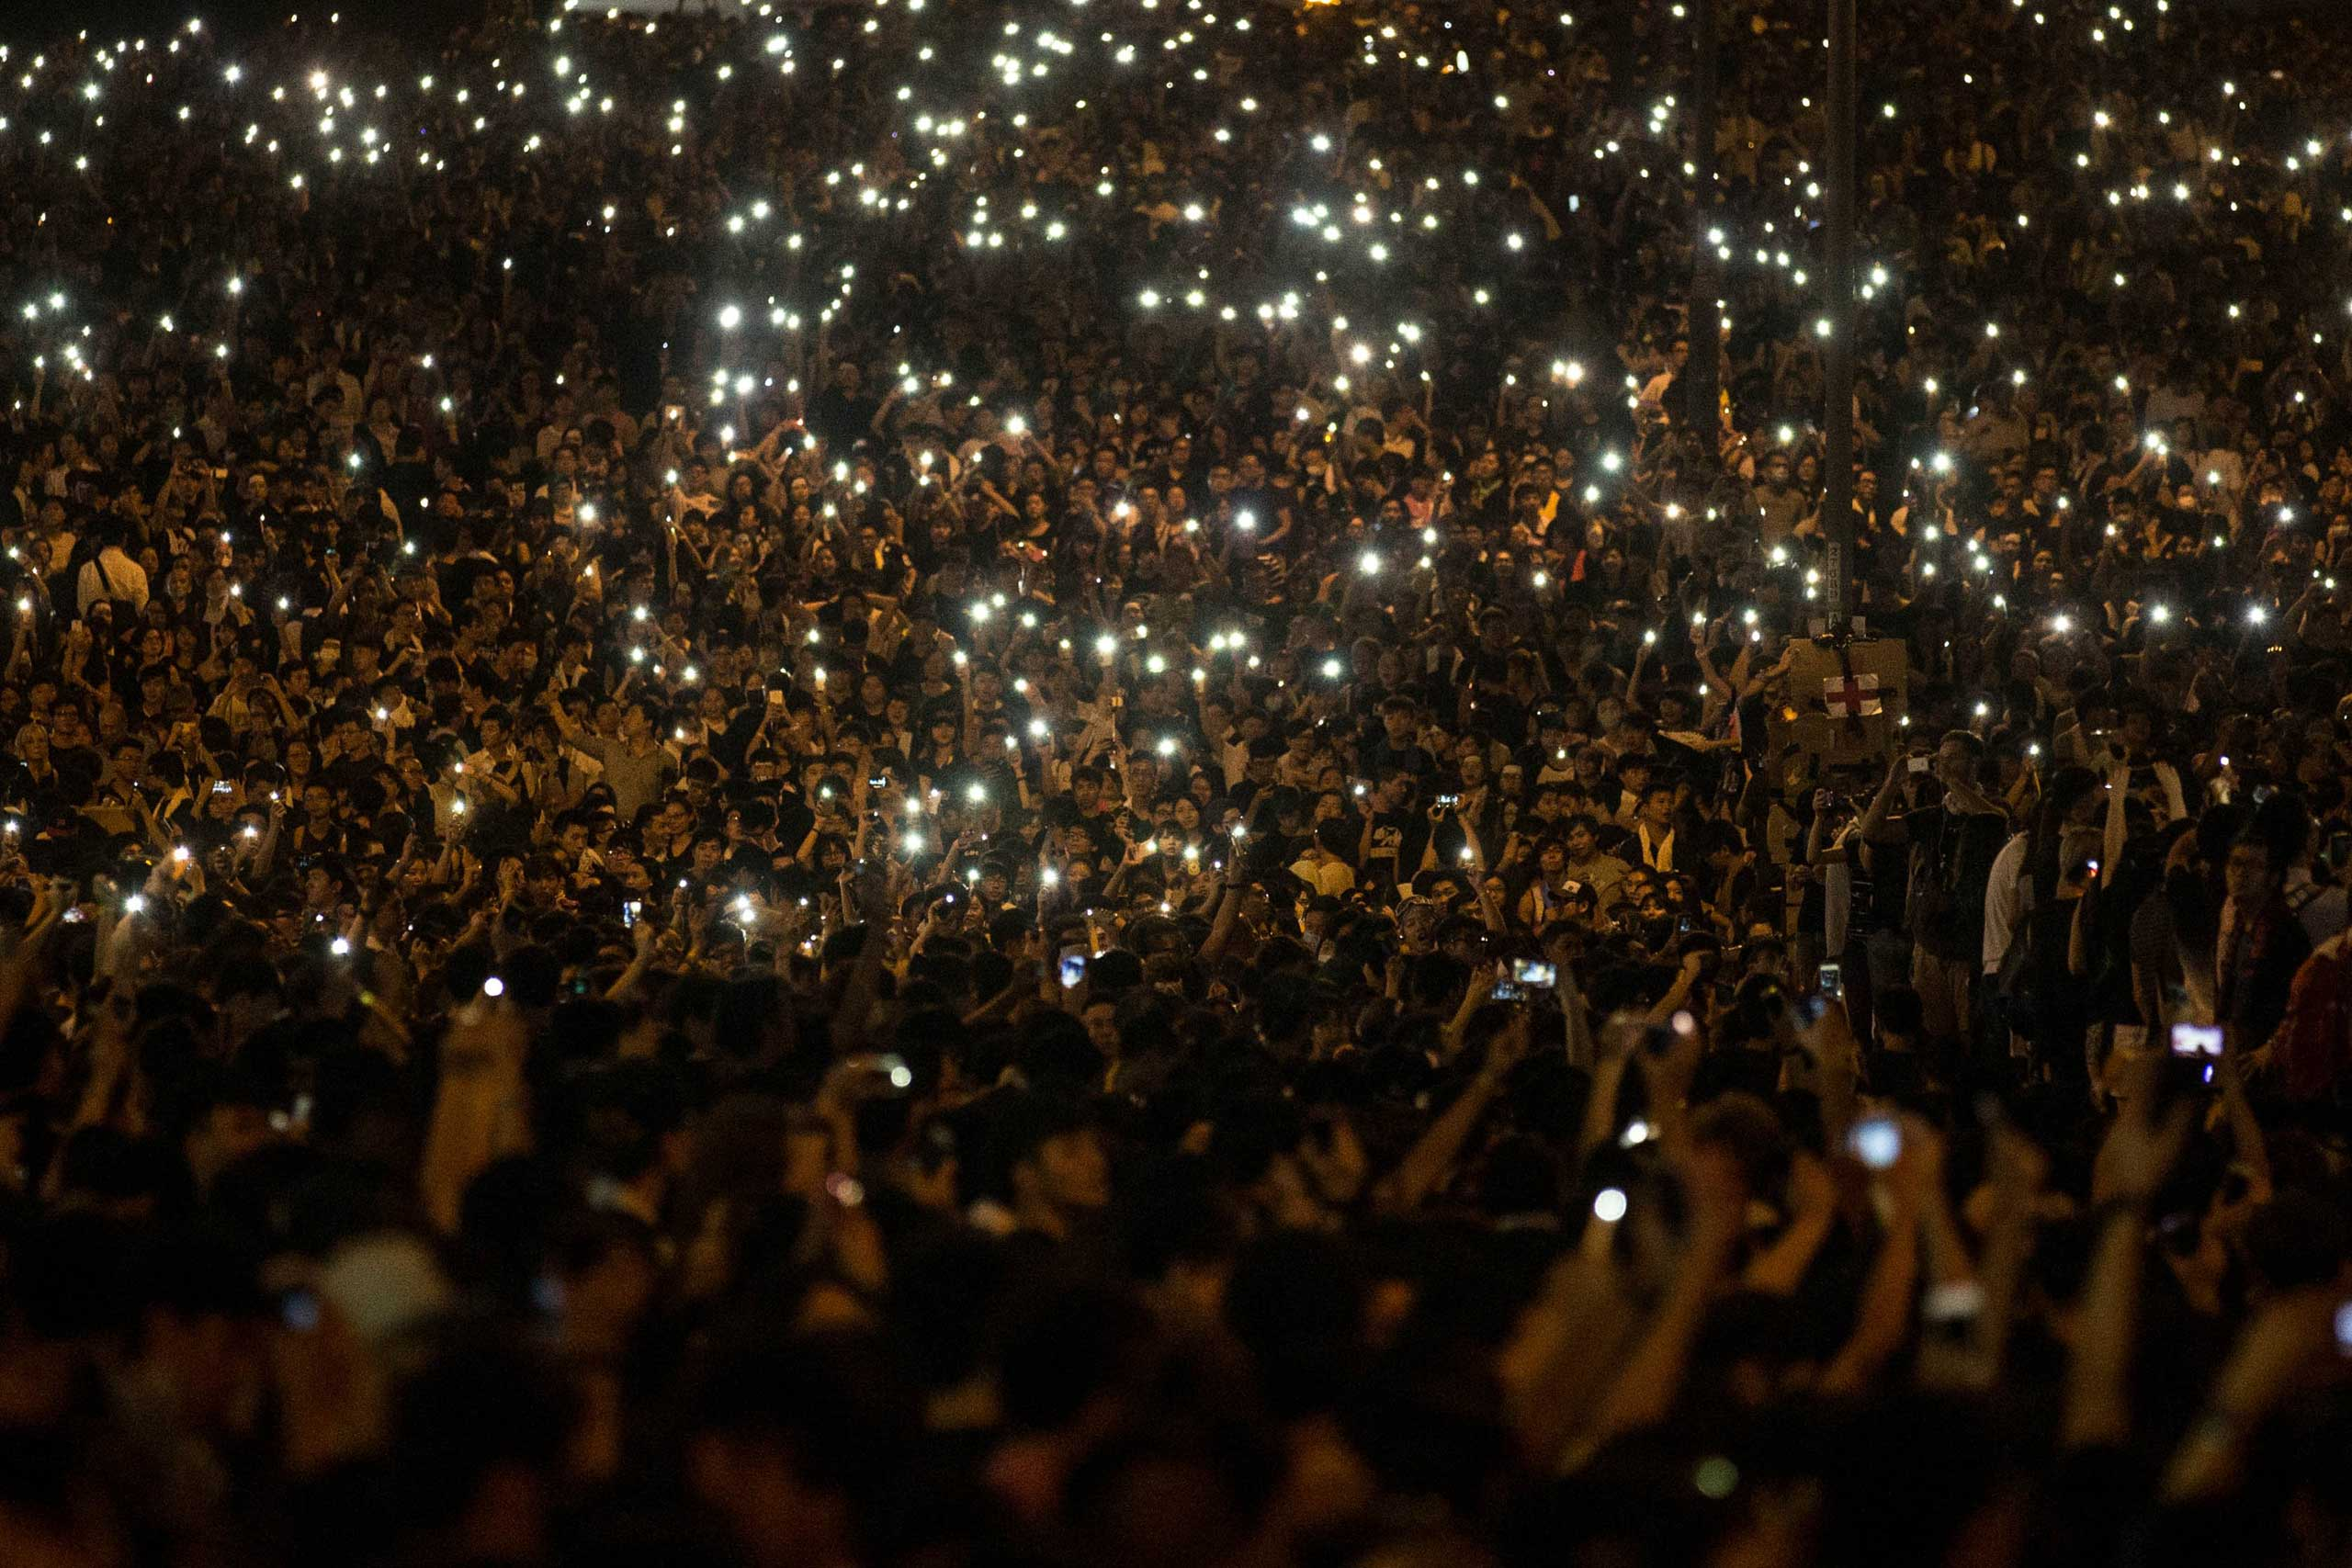 Sept. 29, 2014. Protesters wave their cell phones in the air in the streets outside the Hong Kong Government Complex in Hong Kong. Thousands of pro democracy supporters have remained in the streets of Hong Kong for another day of protests.